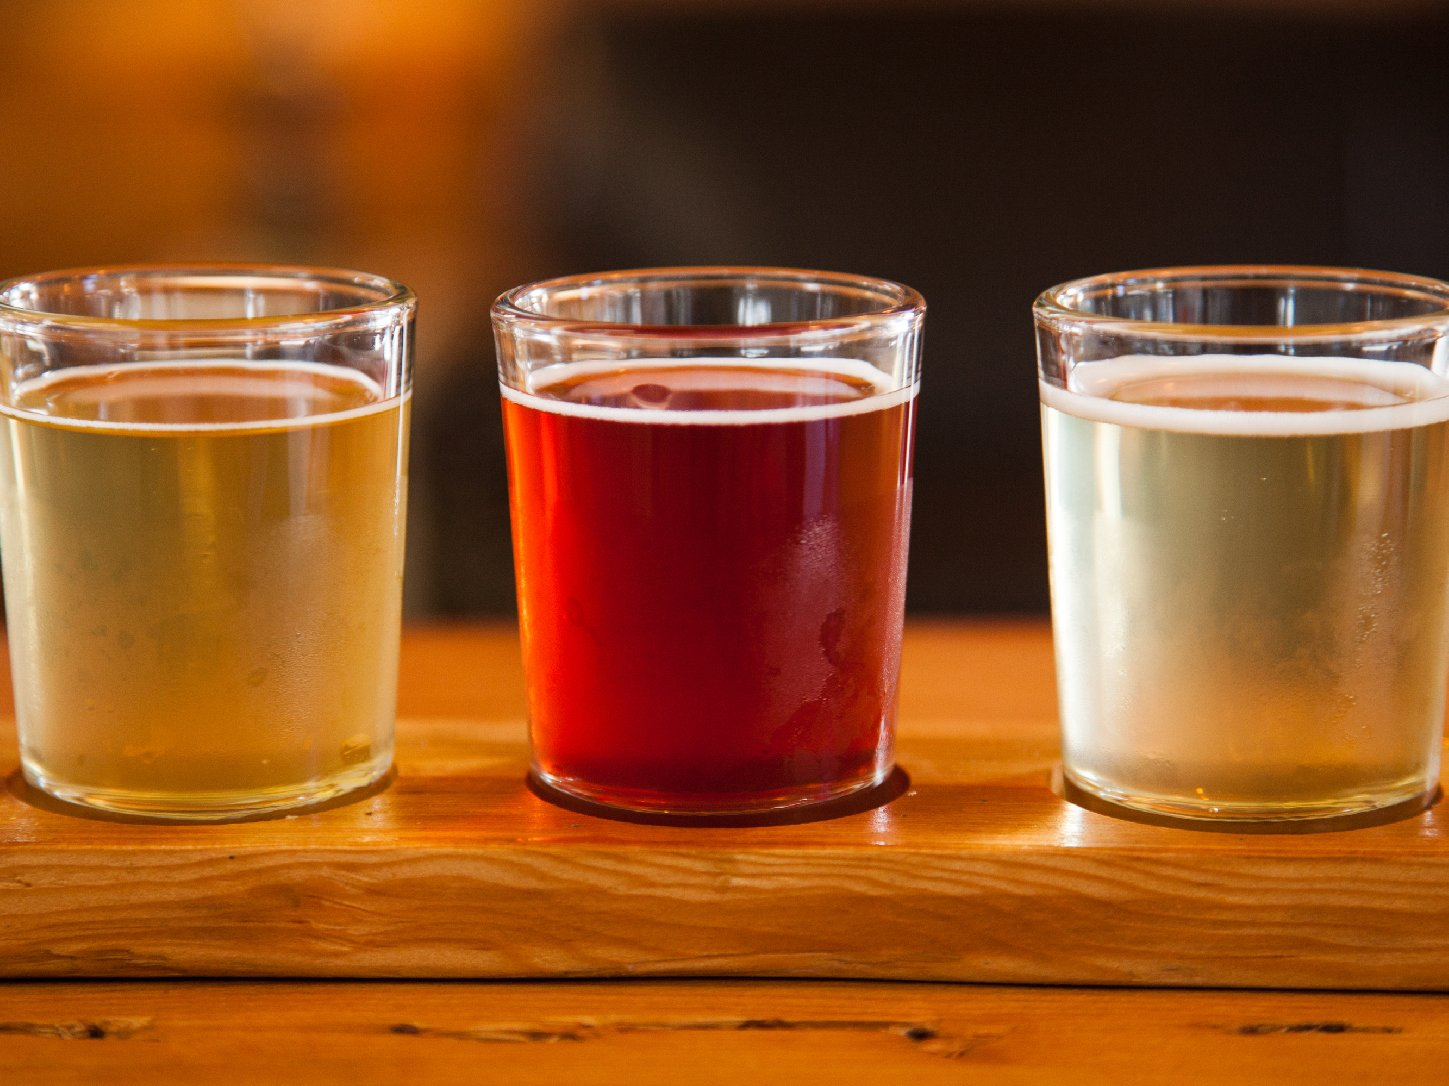 Nat West, owner of Reverend Nat's Hard Cider in Portland, Ore., uses sweet apples to make cider, and gives it an extra kick with ginger juice, herbal tonics, coffee and hops. Photo: Courtesy of Reverend Nat's Hard Cider